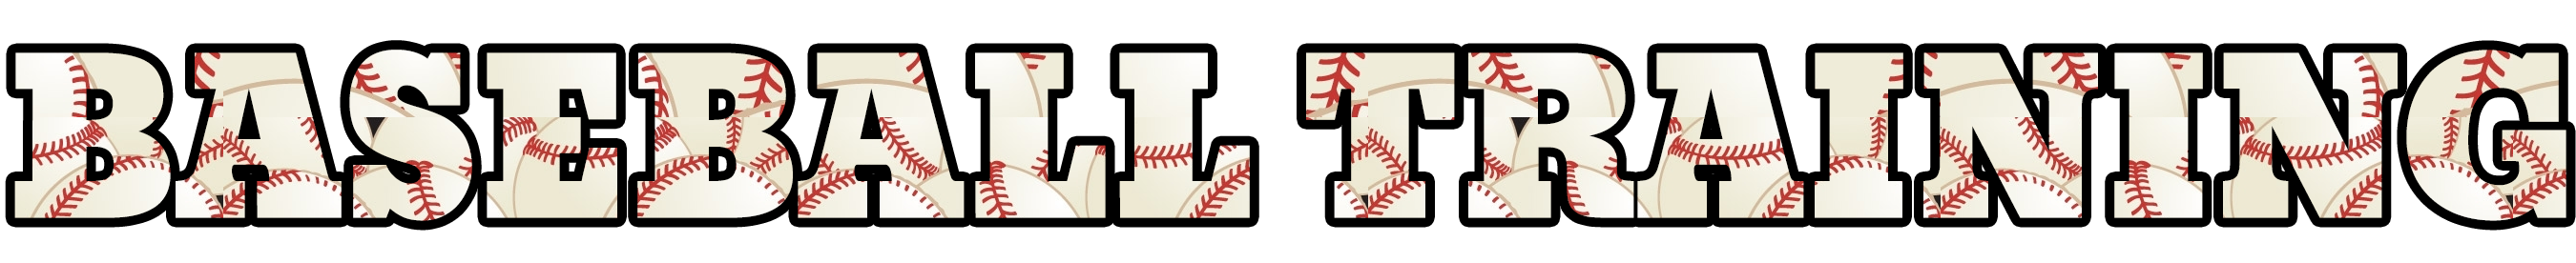 Clipart baseball pitchers grip freeuse library Baseball Training - 3D Sports Training Academy freeuse library